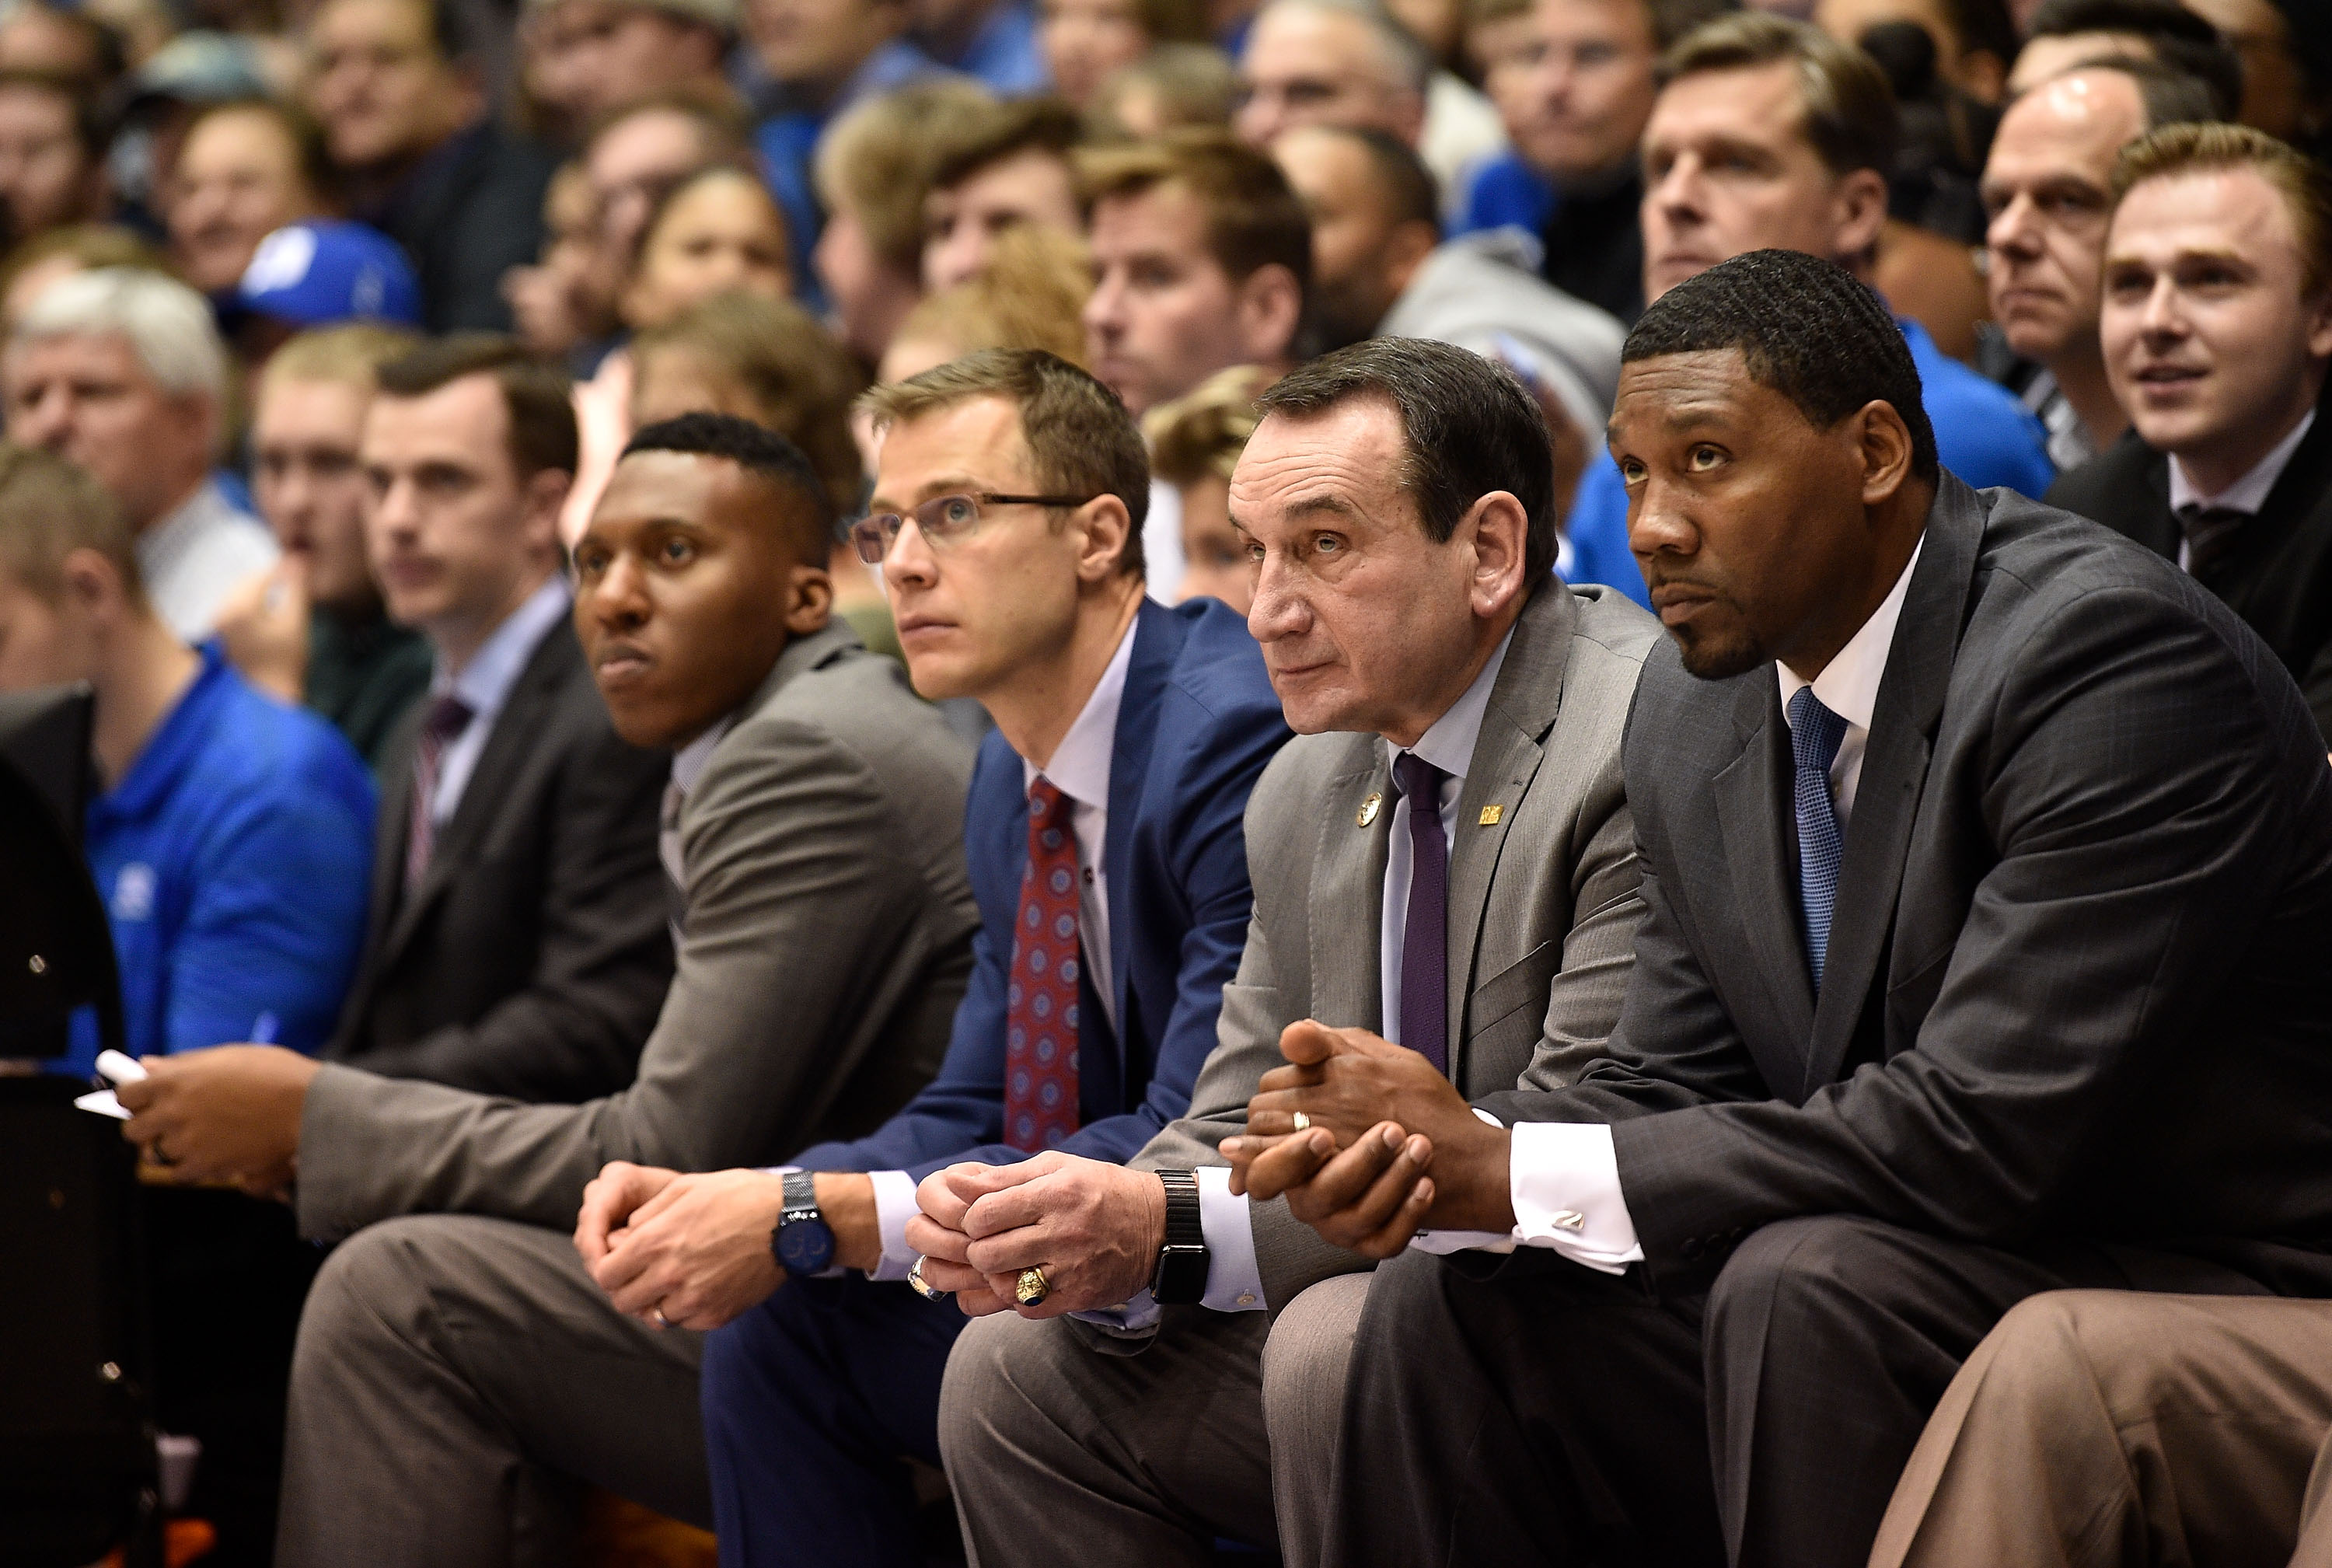 Coaches (L-R) Nolan Smith, Jon Scheyer, head coach Mike Krzyzewski and Nate James of the Duke Blue Devils watch during their game against the Princeton Tigers at Cameron Indoor Stadium on December 18, 2018 in Durham, North Carolina.